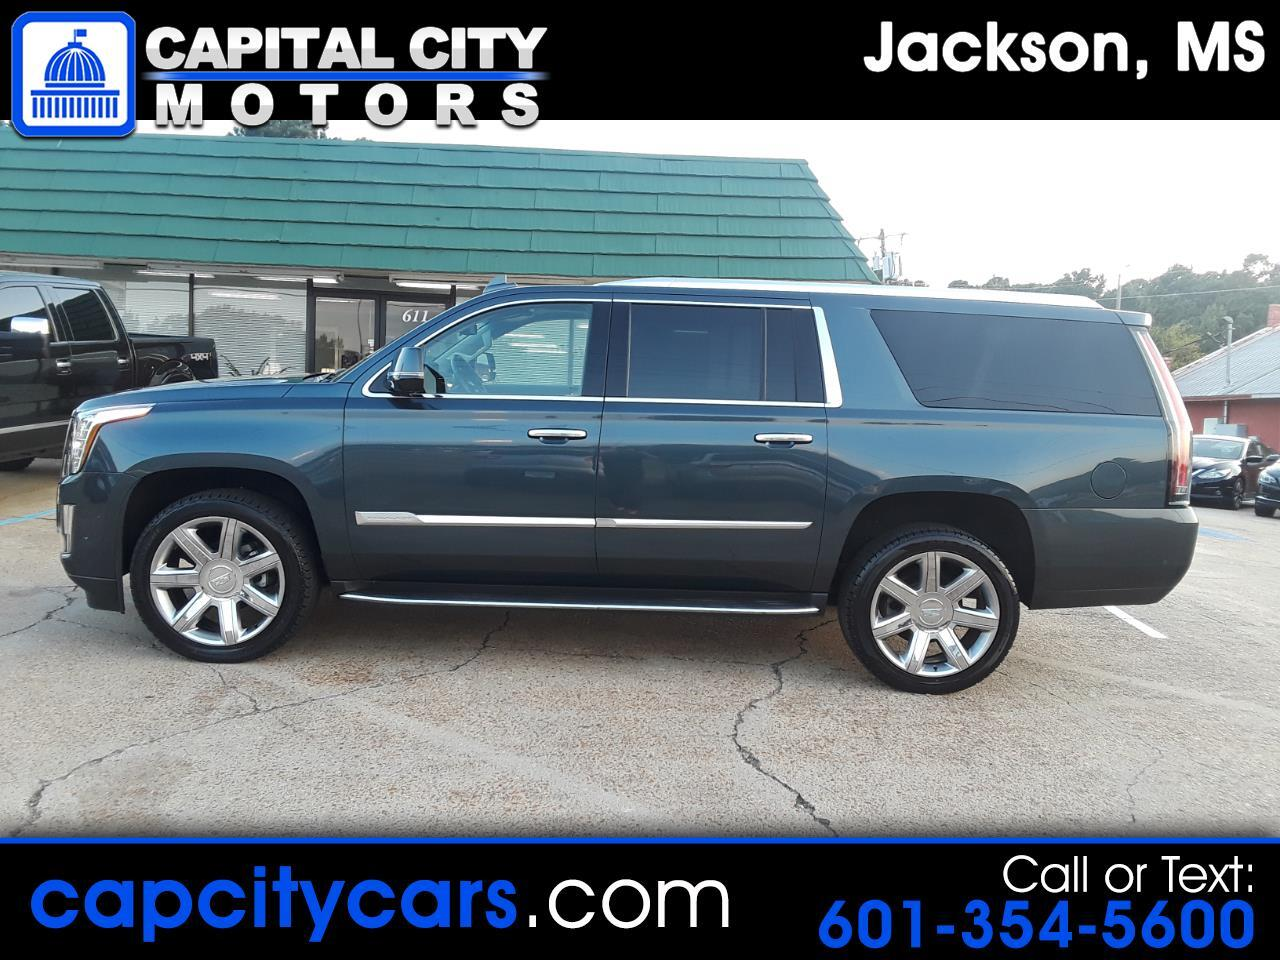 Cars For Sale In Jackson Ms >> Used Cars For Sale Jackson Ms 39201 Capital City Motors Jackson